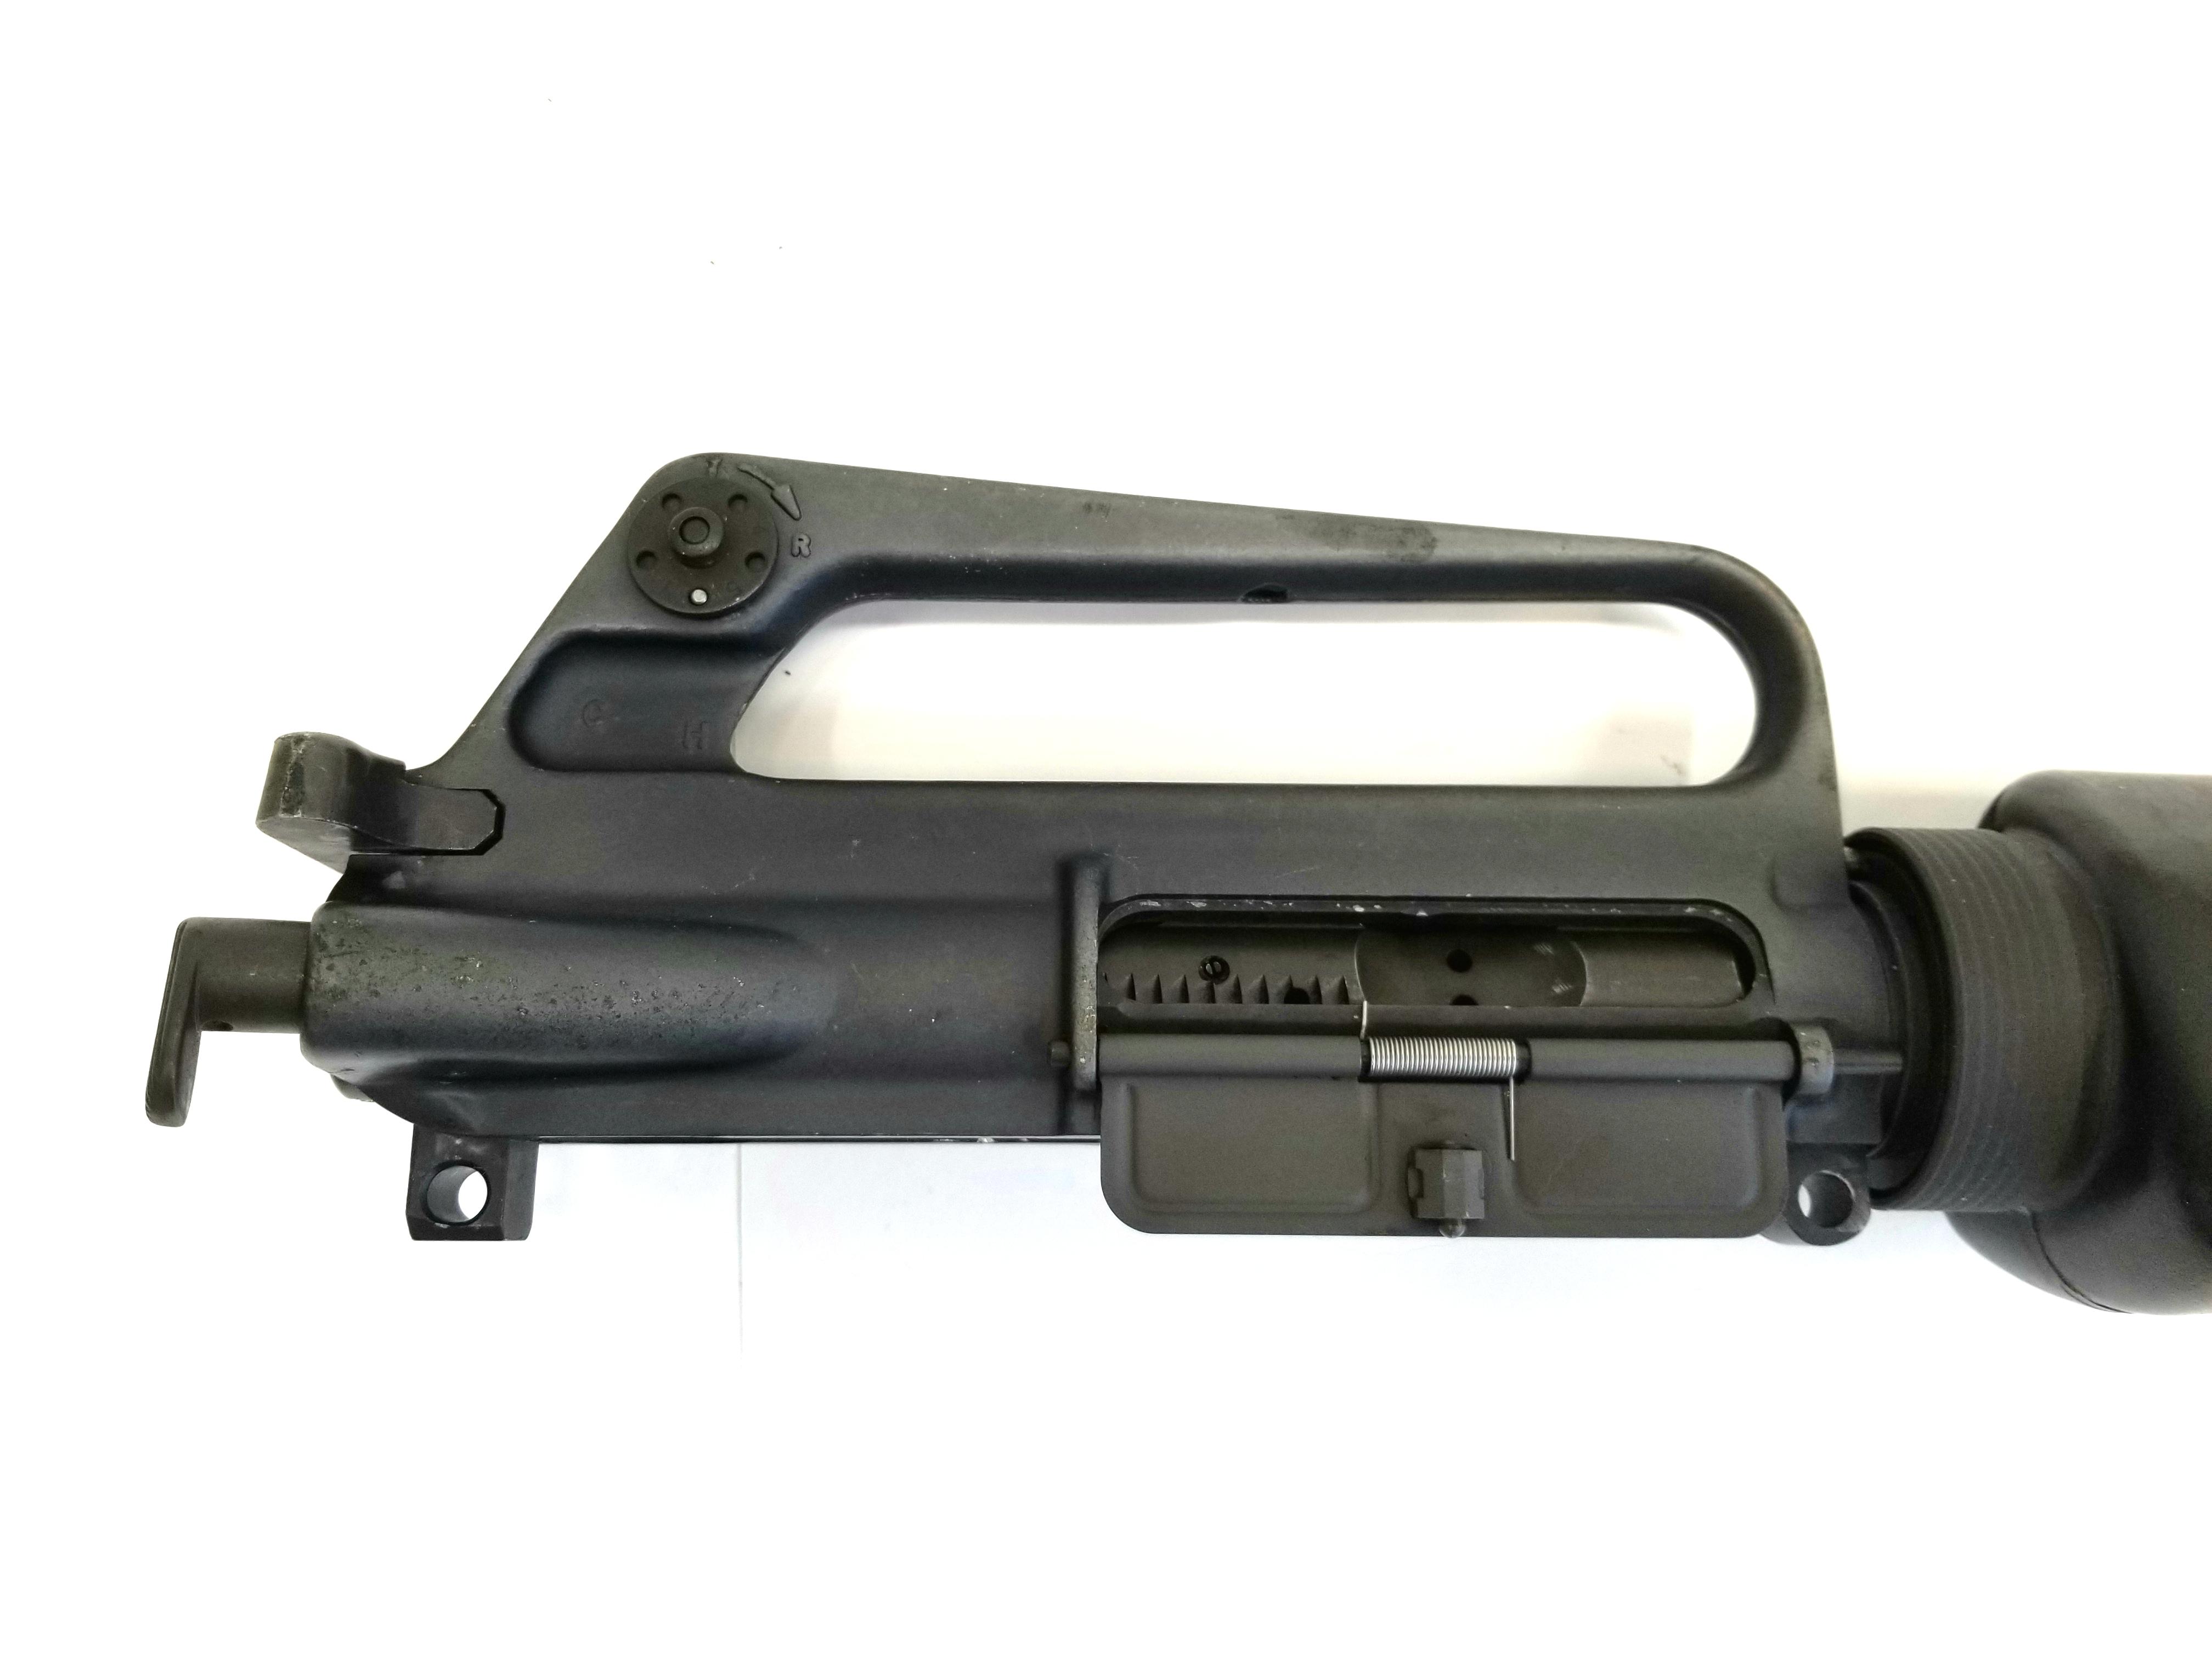 COLT M16A1 UPPER RECEIVER ASSEMBLY IN GOOD USED CONDITION